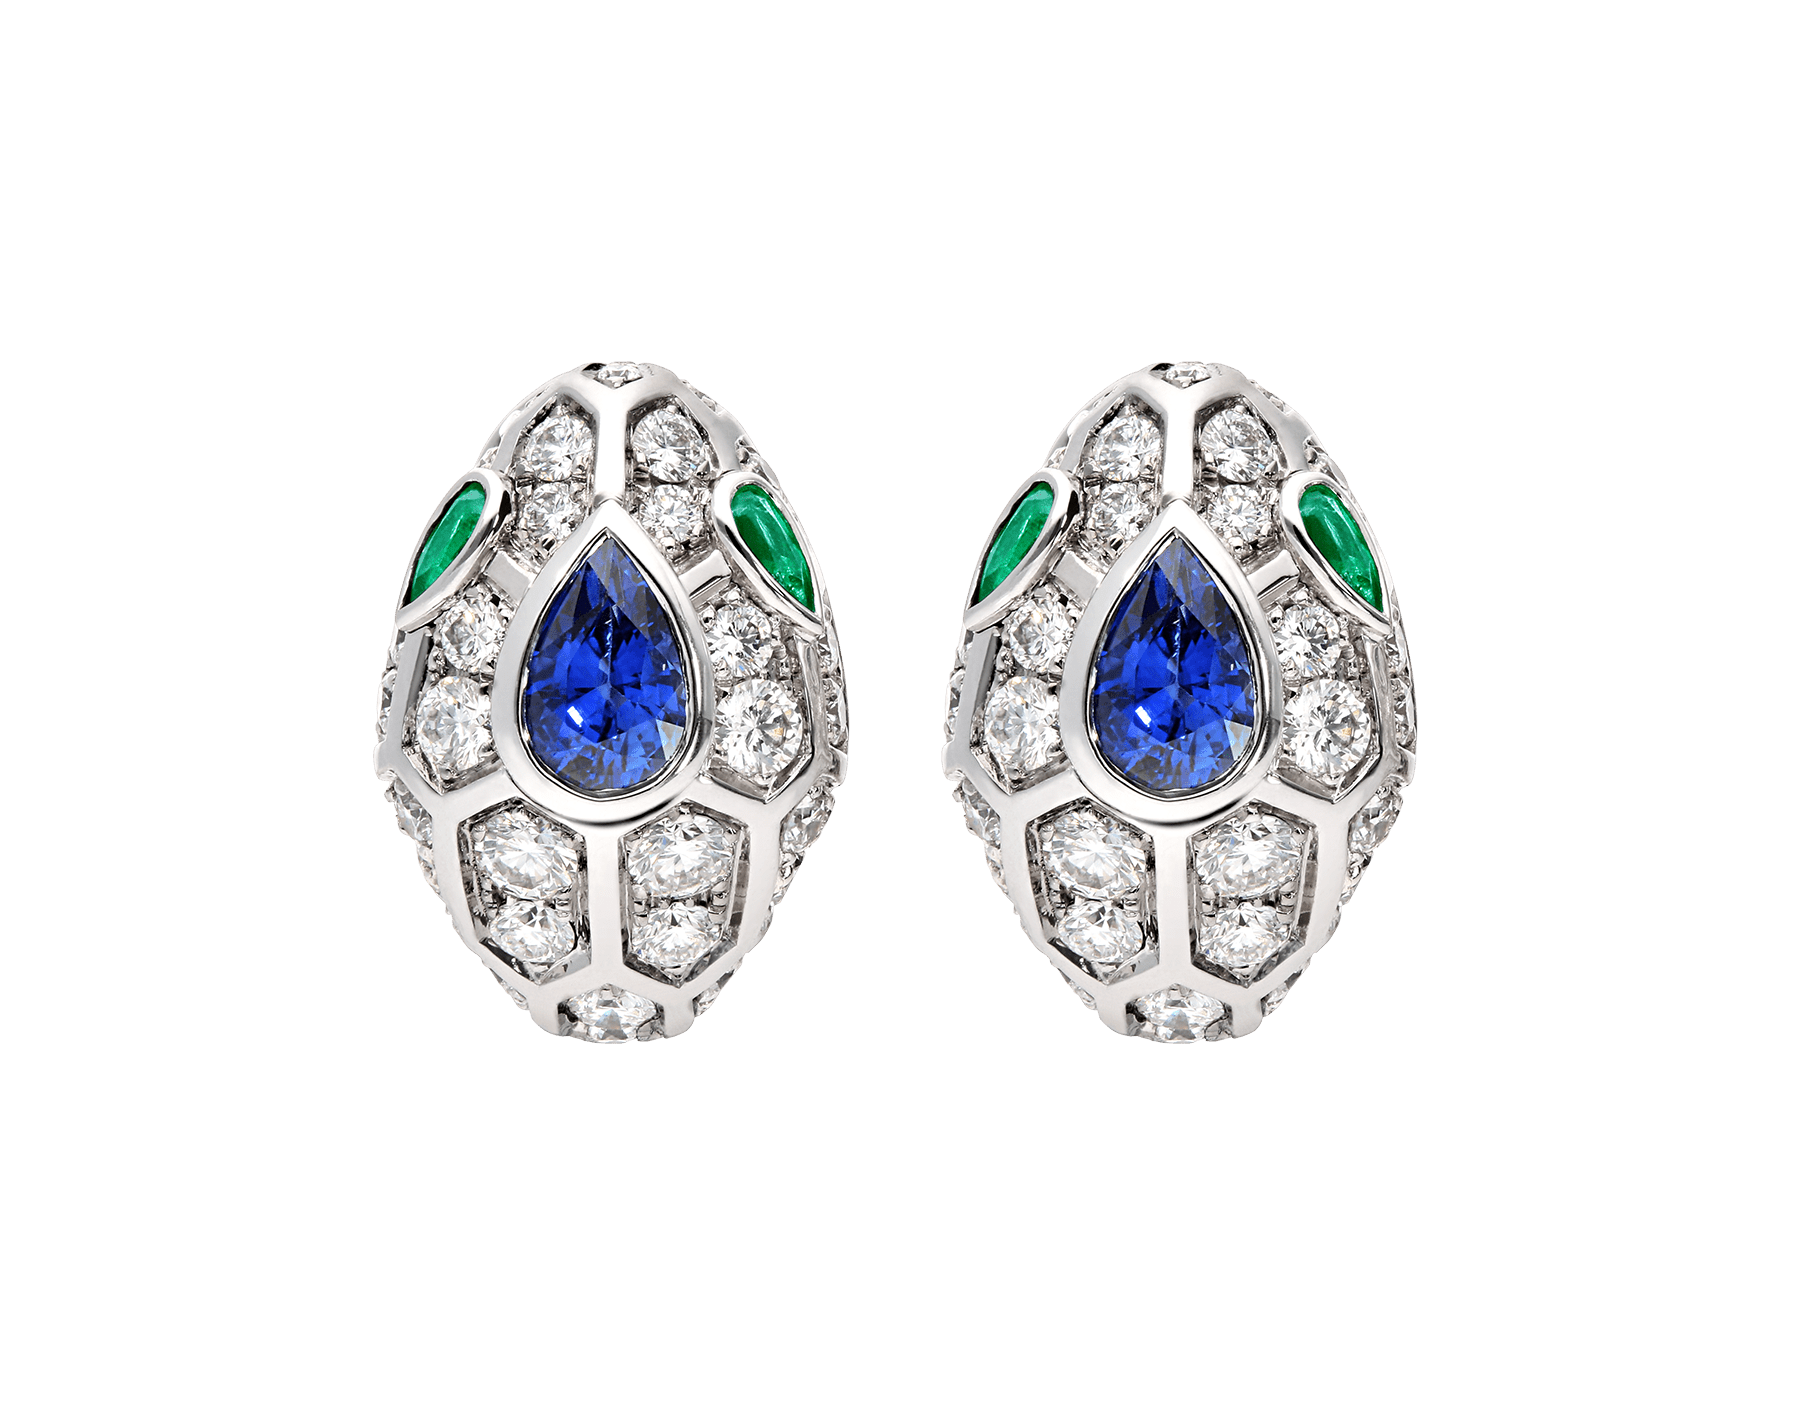 Serpenti 18 kt white gold earrings set with a blue sapphire on the head, emerald eyes and pavé diamonds 355355 image 1